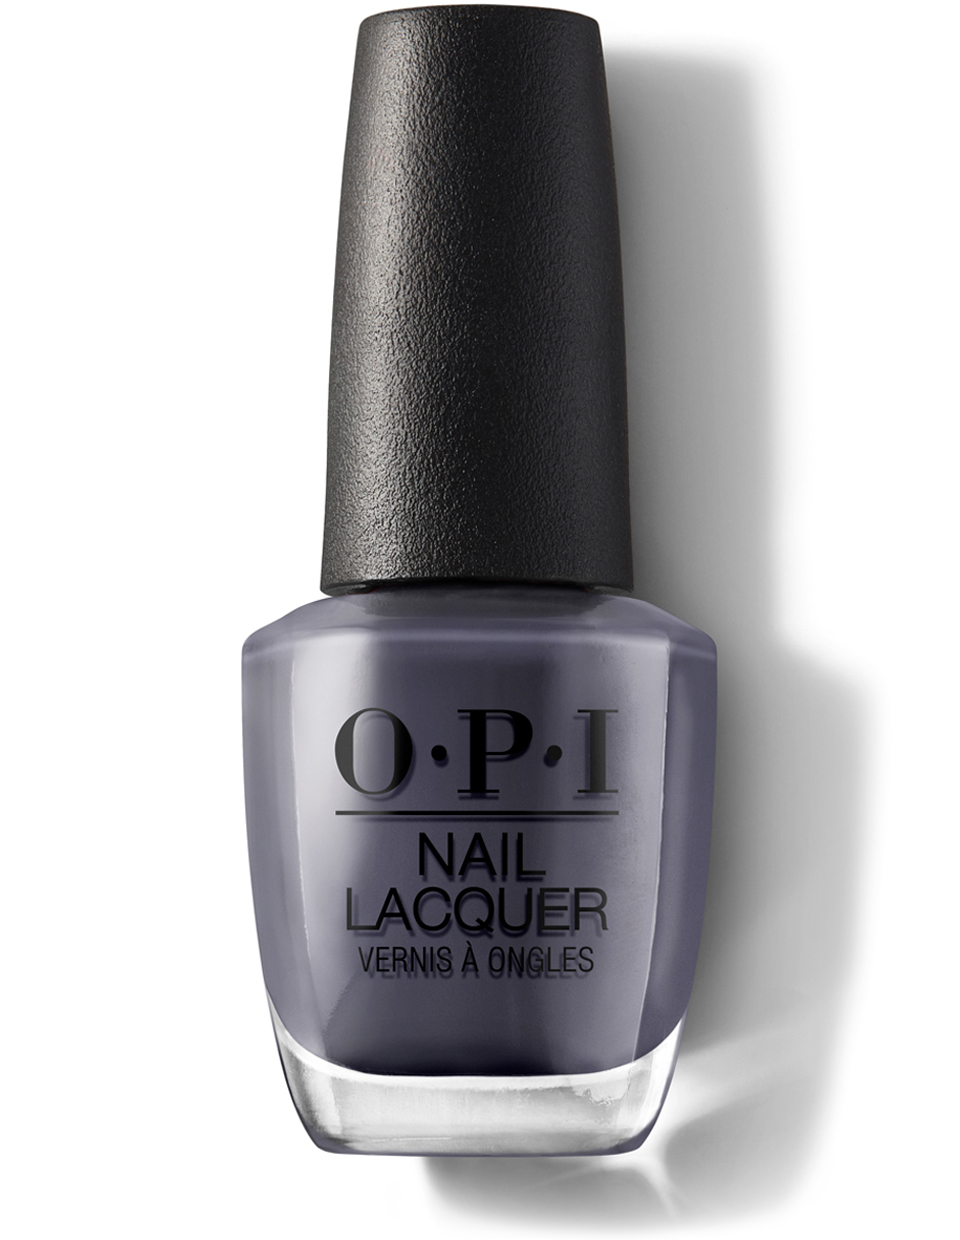 Less is Norse - Nail Lacquer | OPI